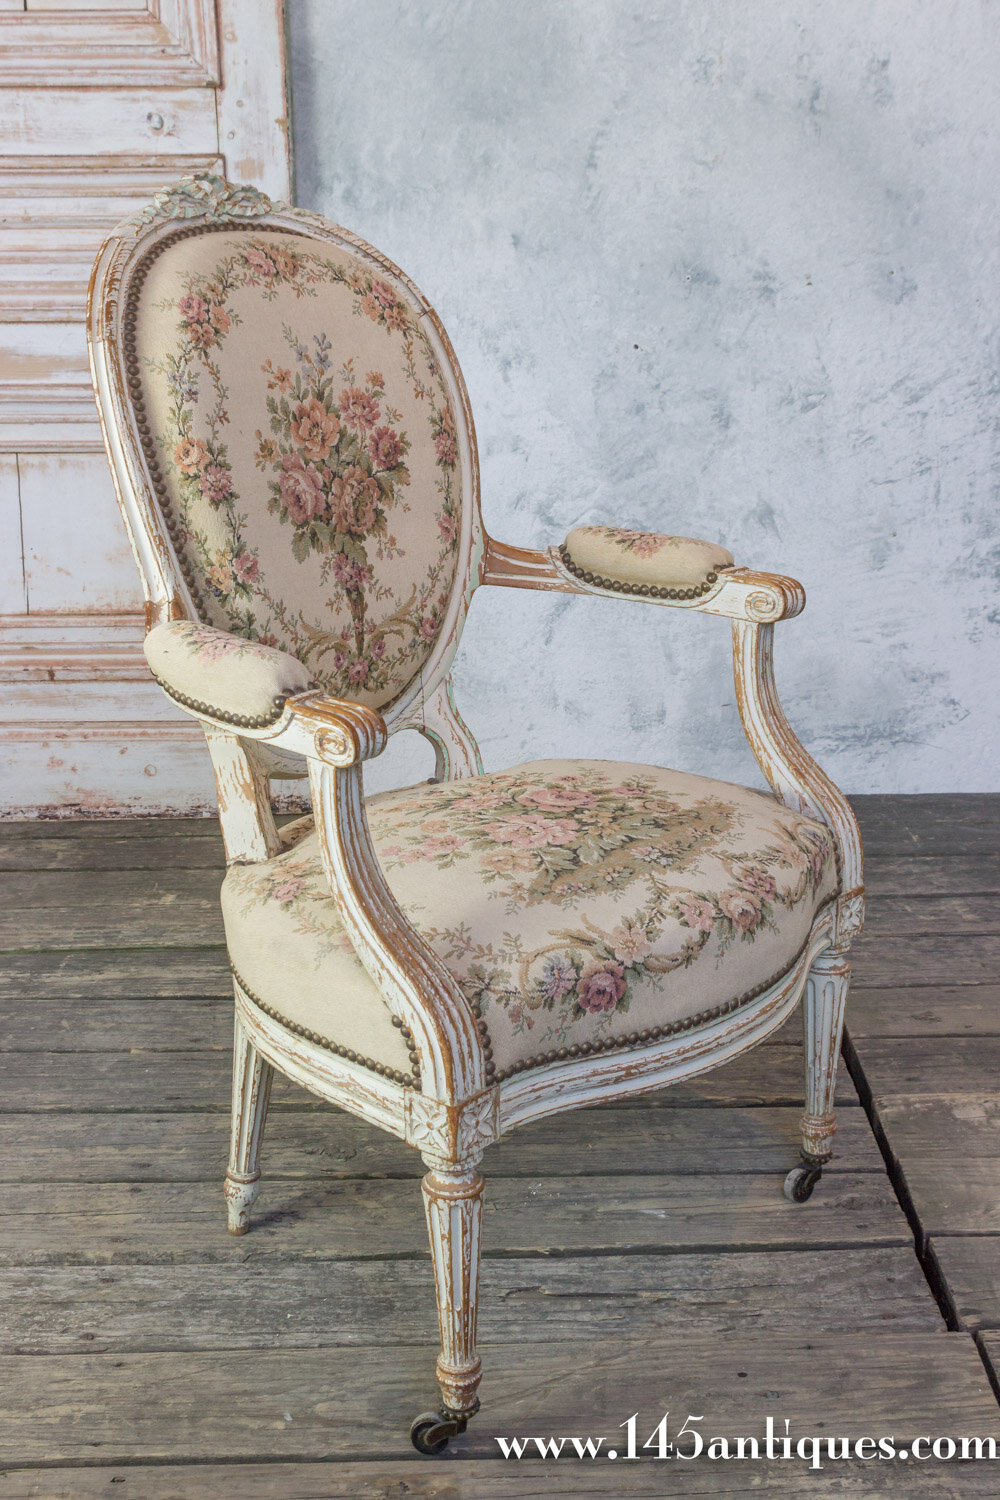 Charmant Pair Of French 19th Century Louis XVI Style Armchairs In Petit Point Fabric